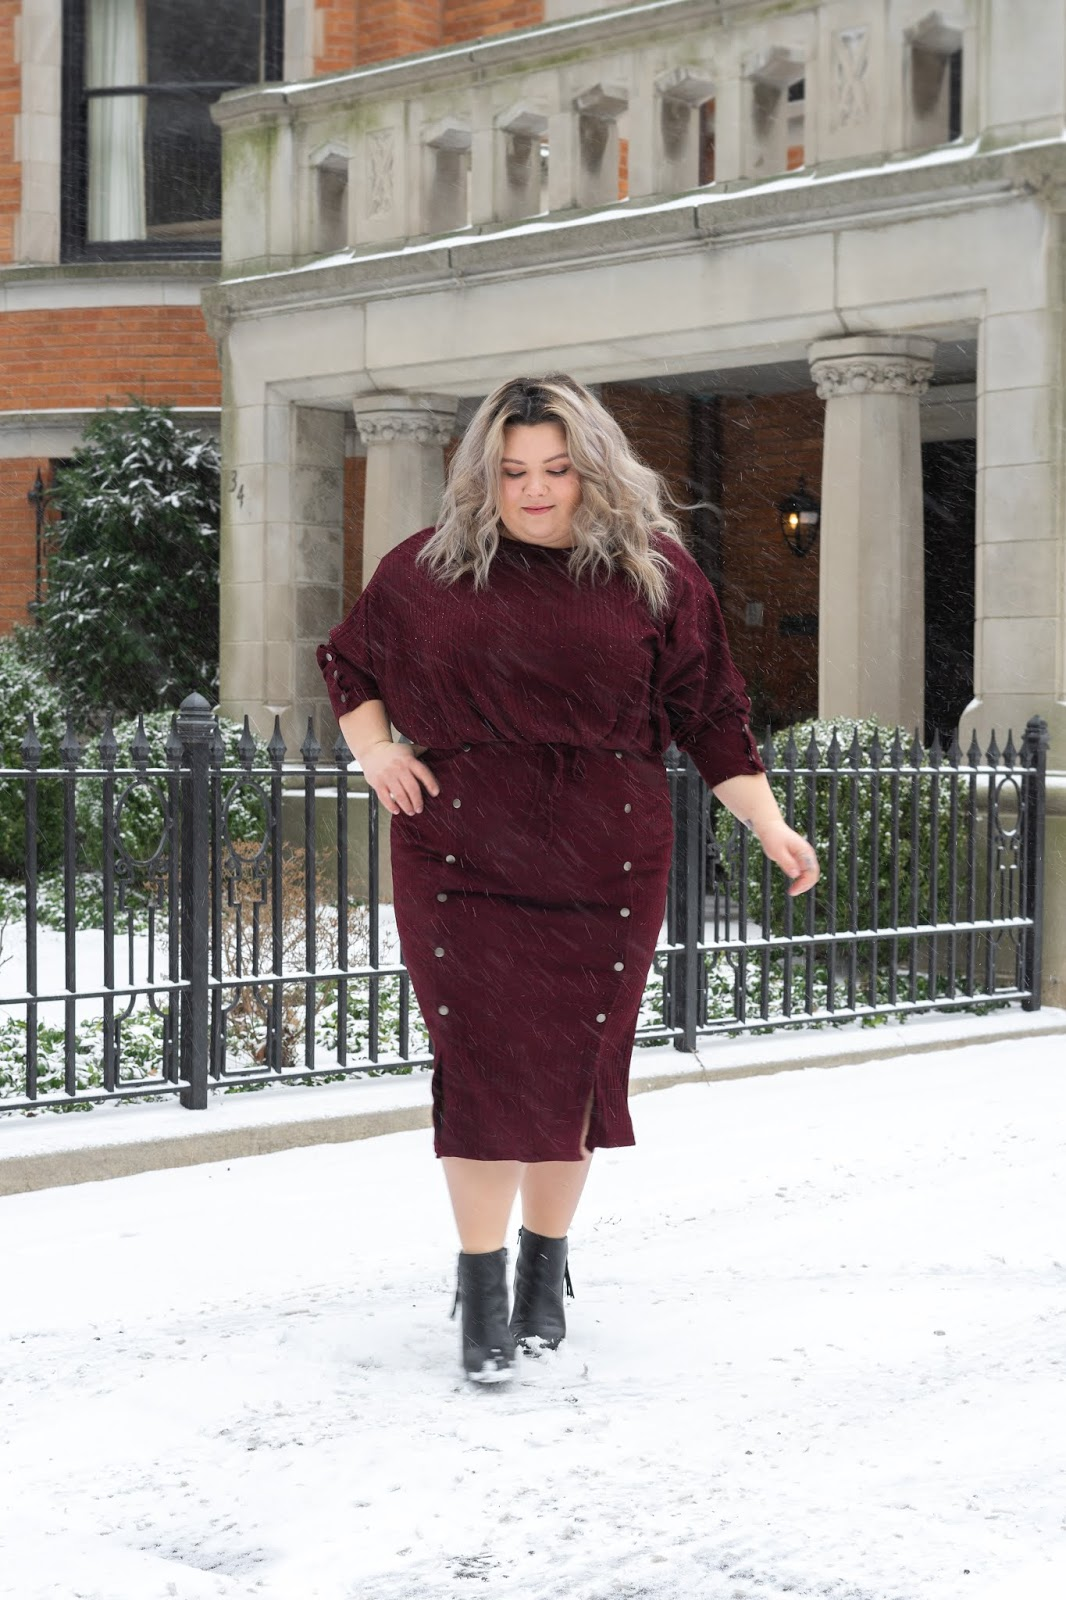 Chicago Plus Size Petite Fashion Blogger, youtuber, and model Natalie Craig, of Natalie in the City, reviews Soncy's Ruby Red Midi Skirt and Cropped Top.